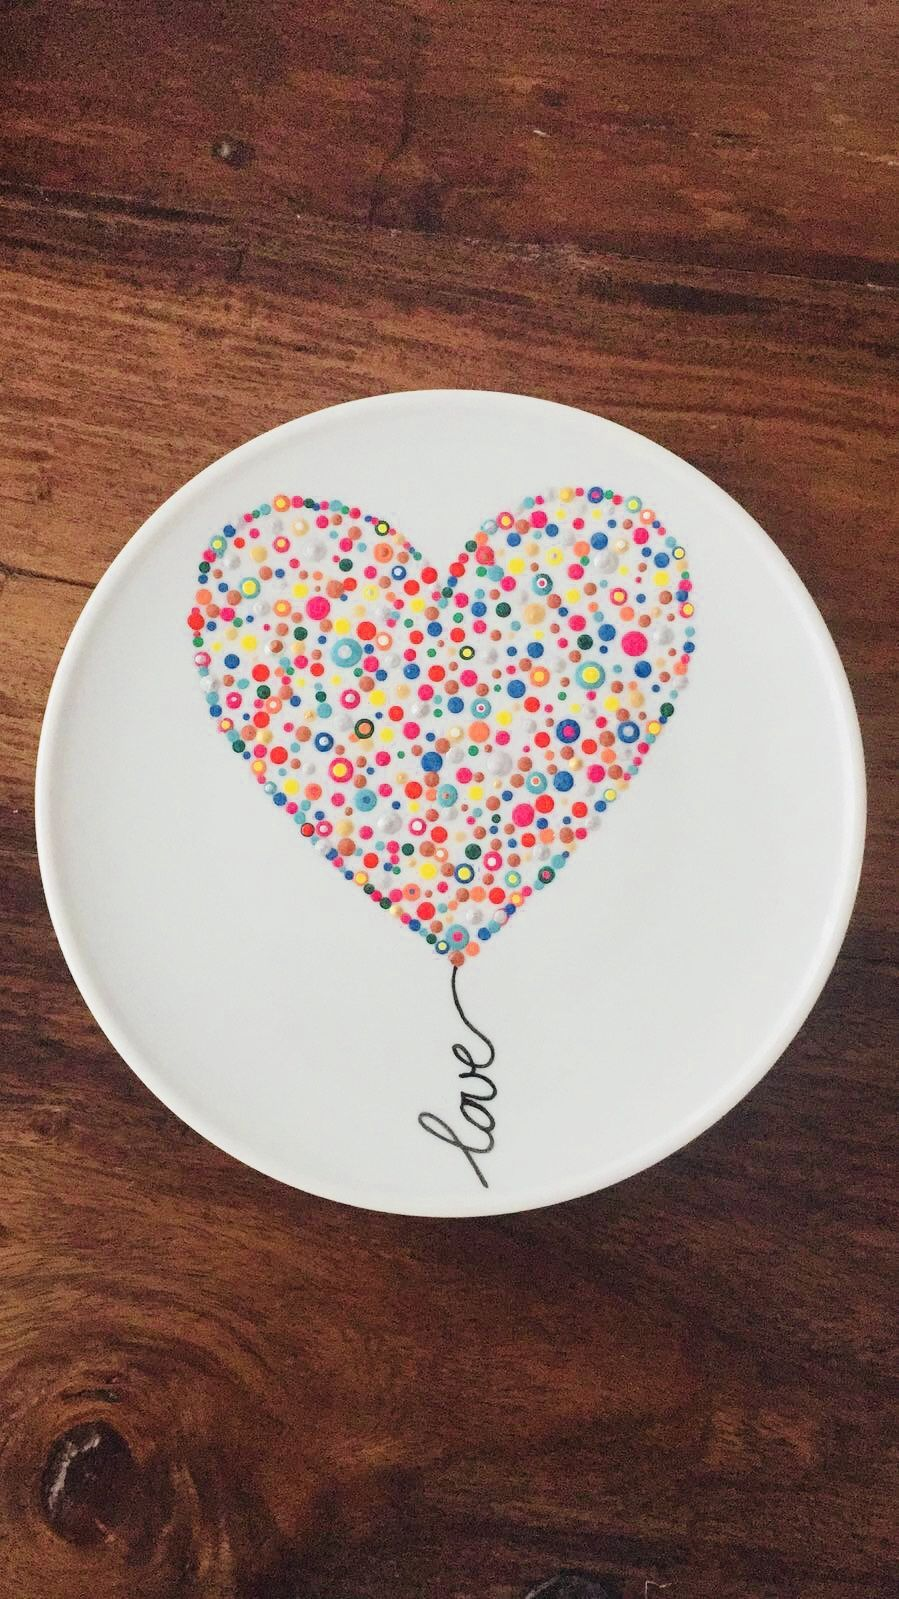 Stippen porselein hart | Awesome Pottery Painting Ideas #Potterypainting #paintedpottery